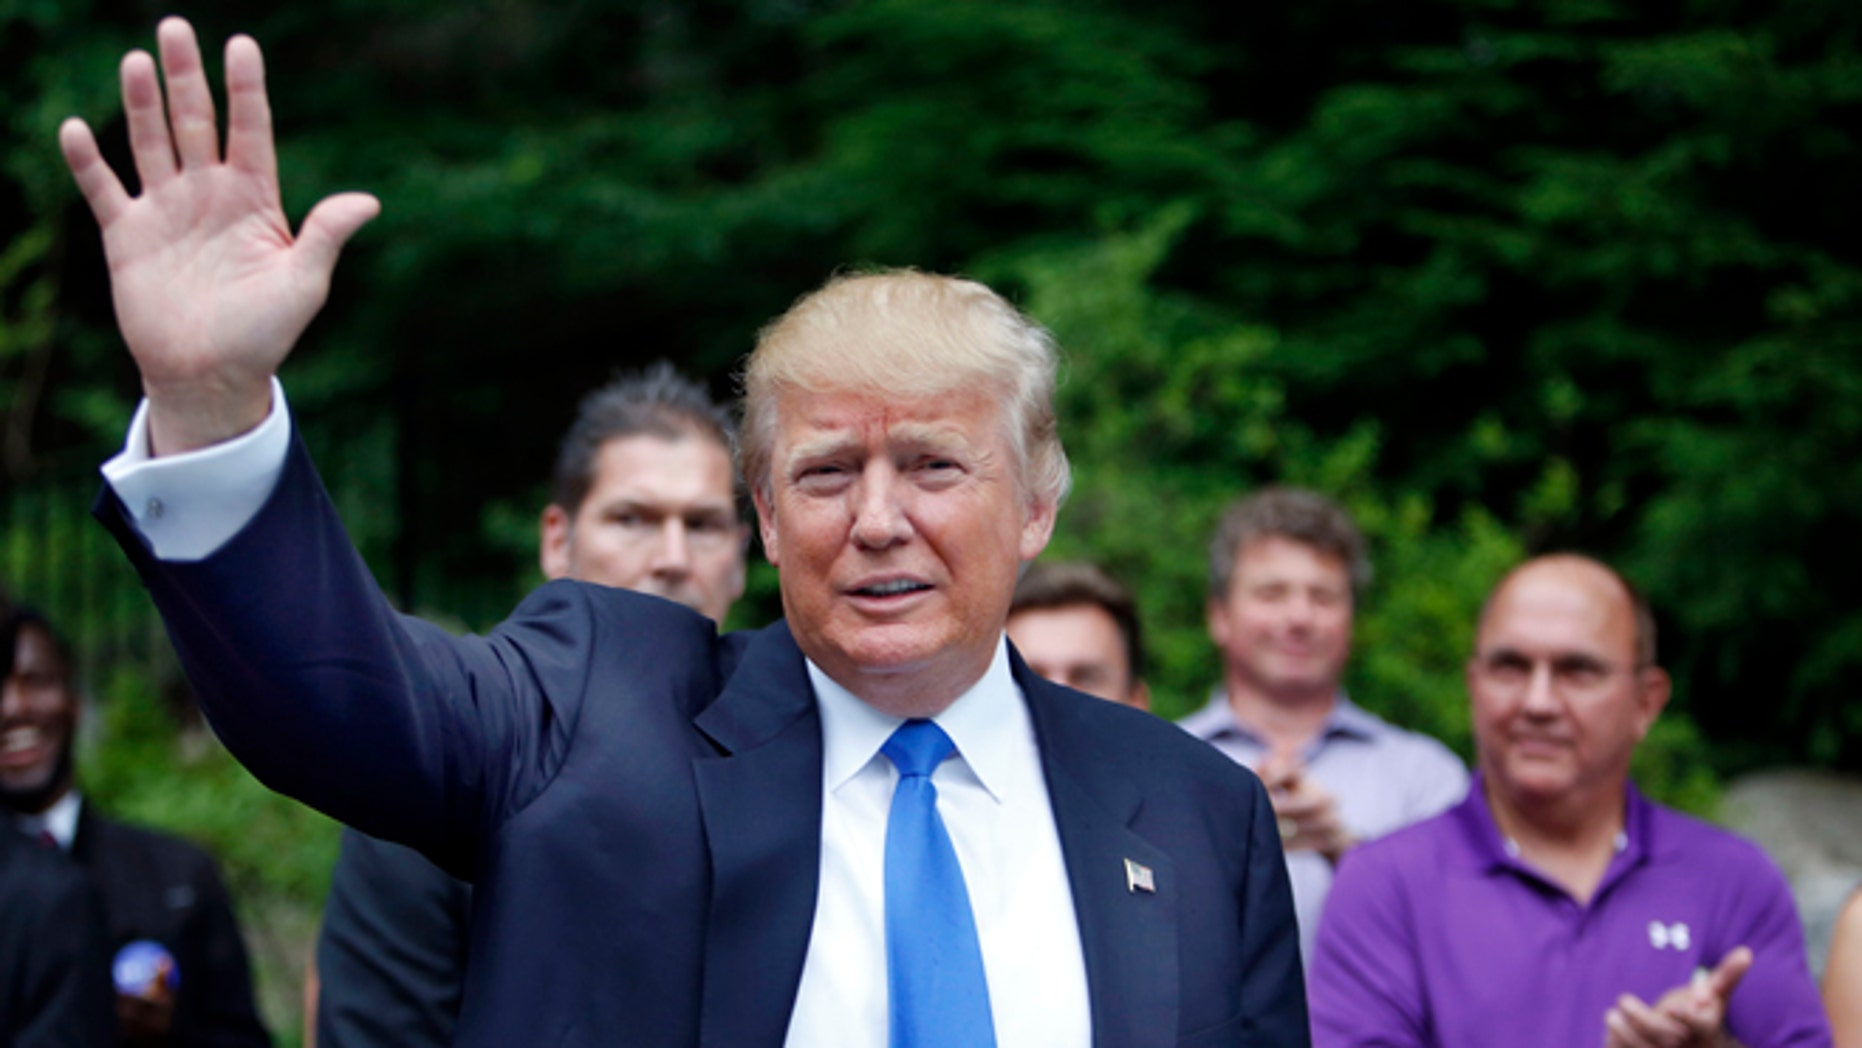 FILE - In this Tuesday, June 30, 2015 file photo, Republican presidential candidate Donald Trump waves as he arrives at a house party in Bedford, N.H. Alex Nogales, president of the National Hispanic Media Coalition, said Thursday, July 9, 2015, that more organizations need to follow the example of NBC and cut business ties with Trump.  (AP Photo/Jim Cole, File)